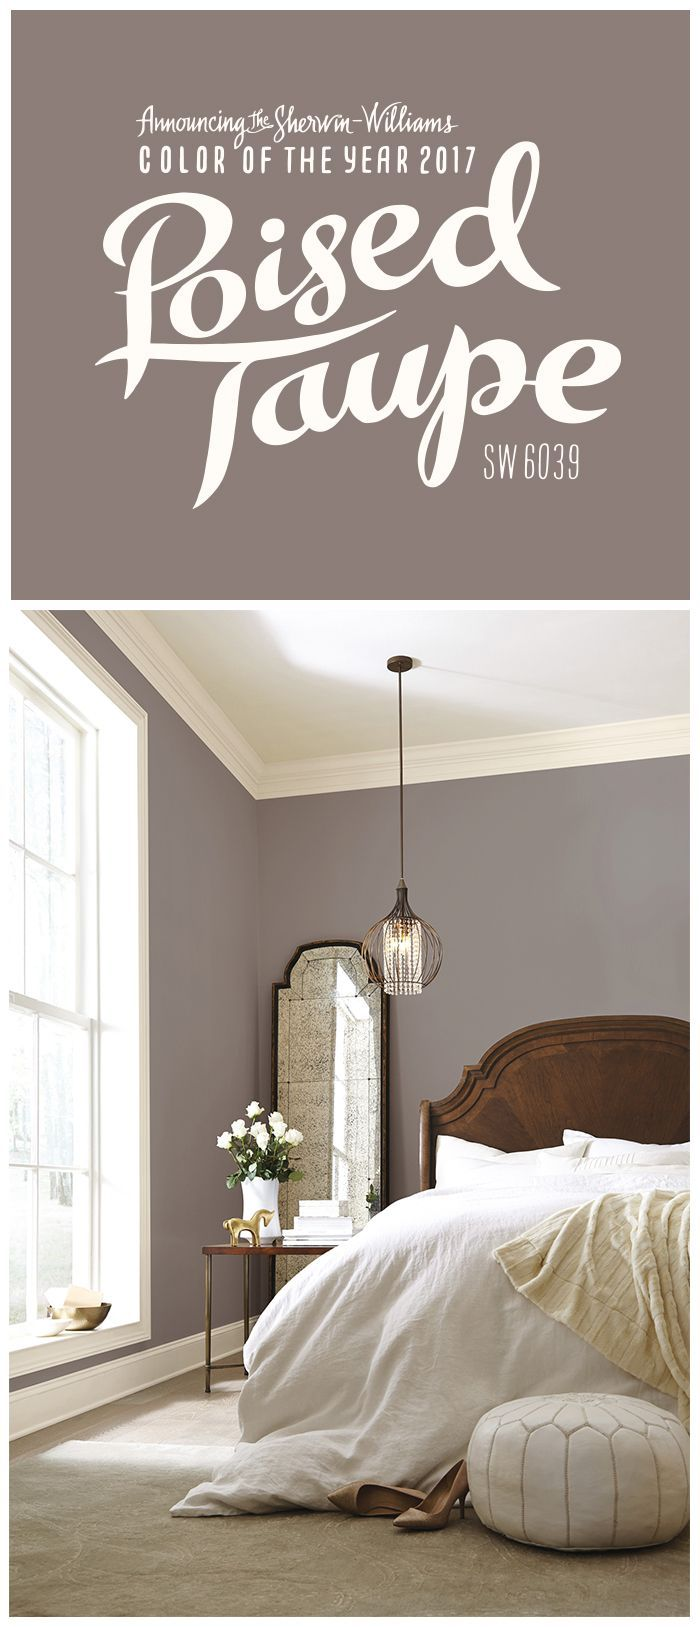 nice We're thrilled about our 2017 Color of the Year: Poised Taupe SW 6039. This ti... by http://www.top-100-homedecorpictures.us/home-improvement/were-thrilled-about-our-2017-color-of-the-year-poised-taupe-sw-6039-this-ti/